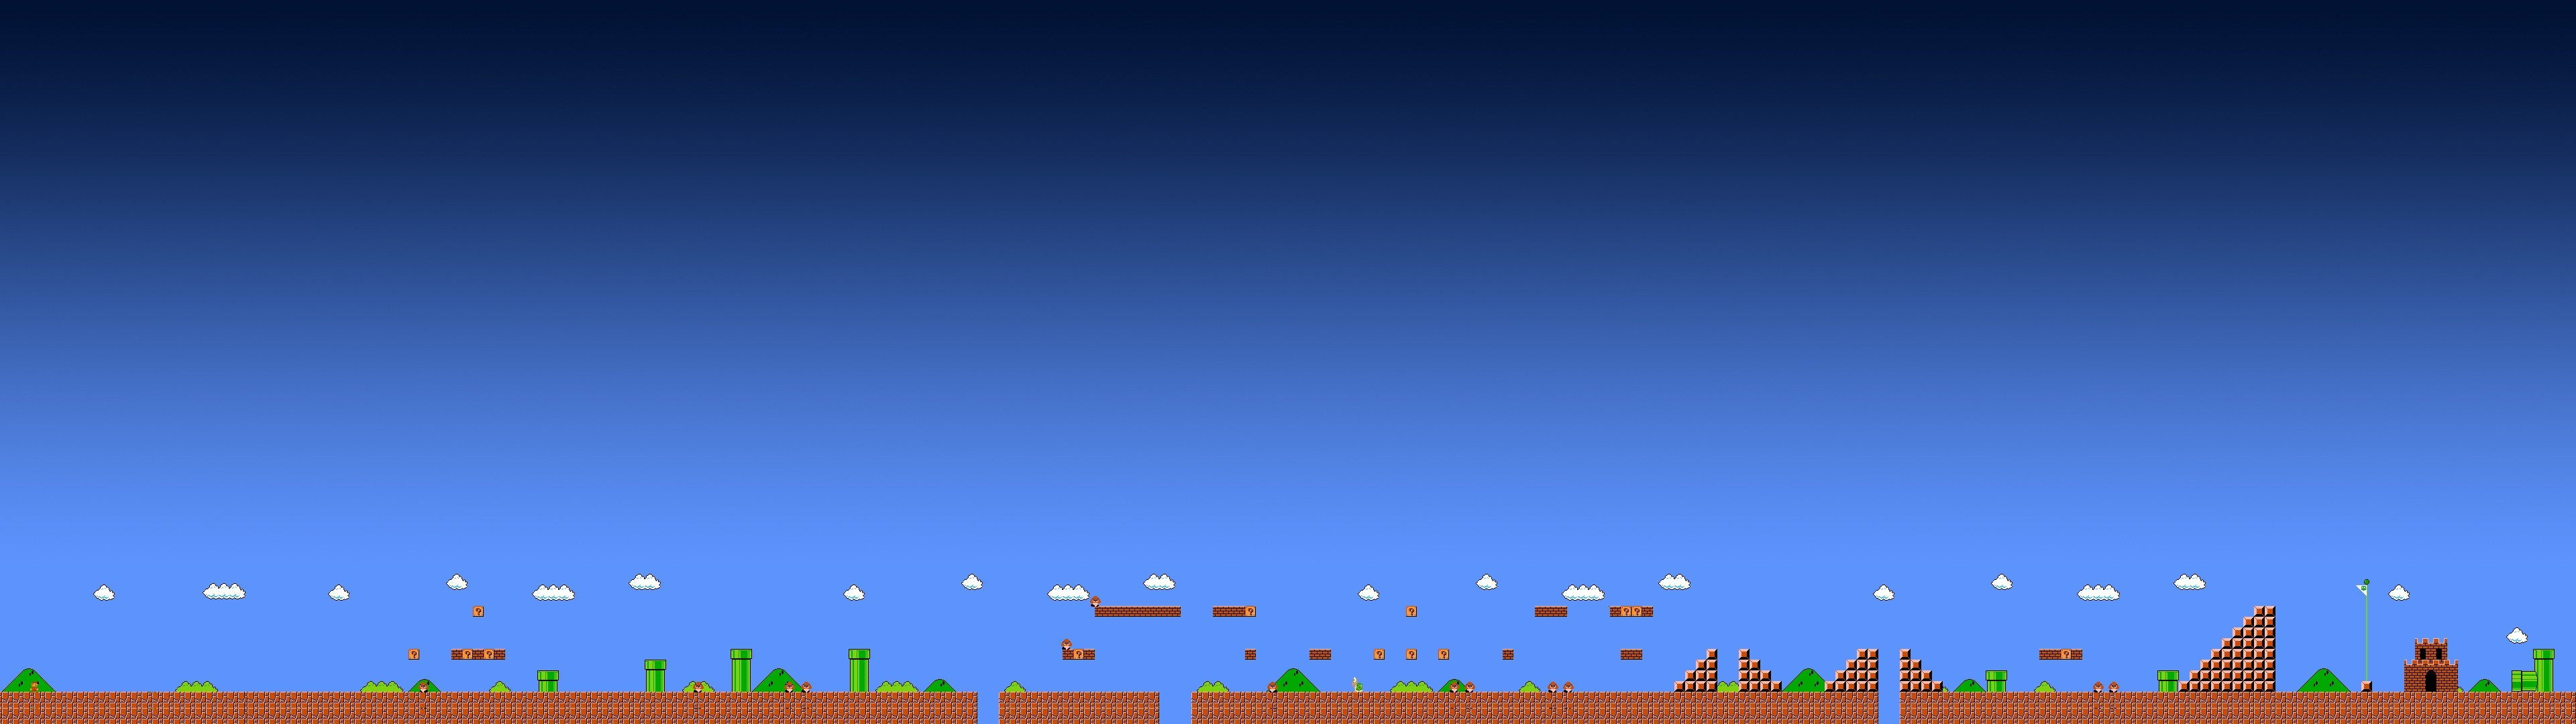 mario background dual monitor 1920x1080 58118